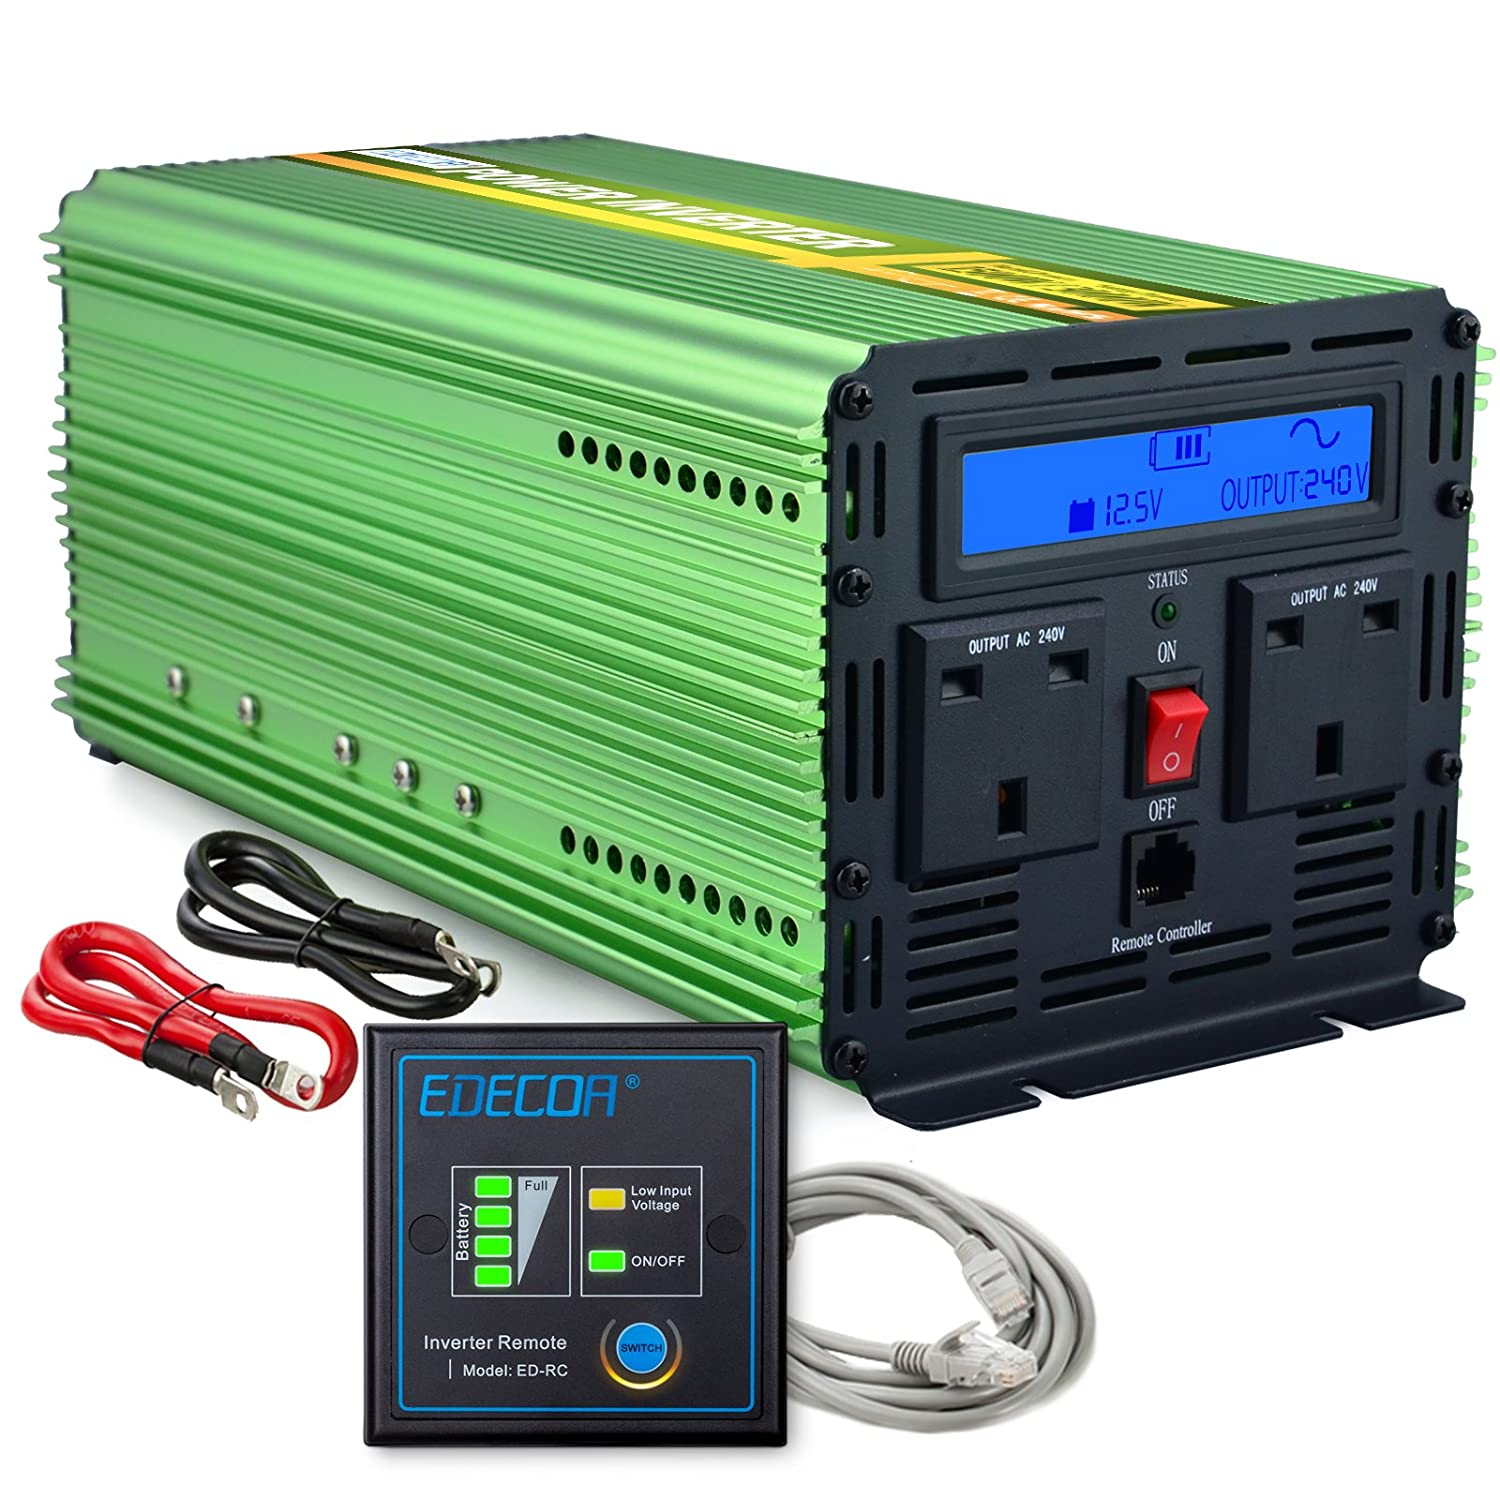 EDECOA 1500W Peak 3000W Pure Sine Wvae Power Inverter DC 12V to 240V AC Car  Vehicle withLCD Display and Remote